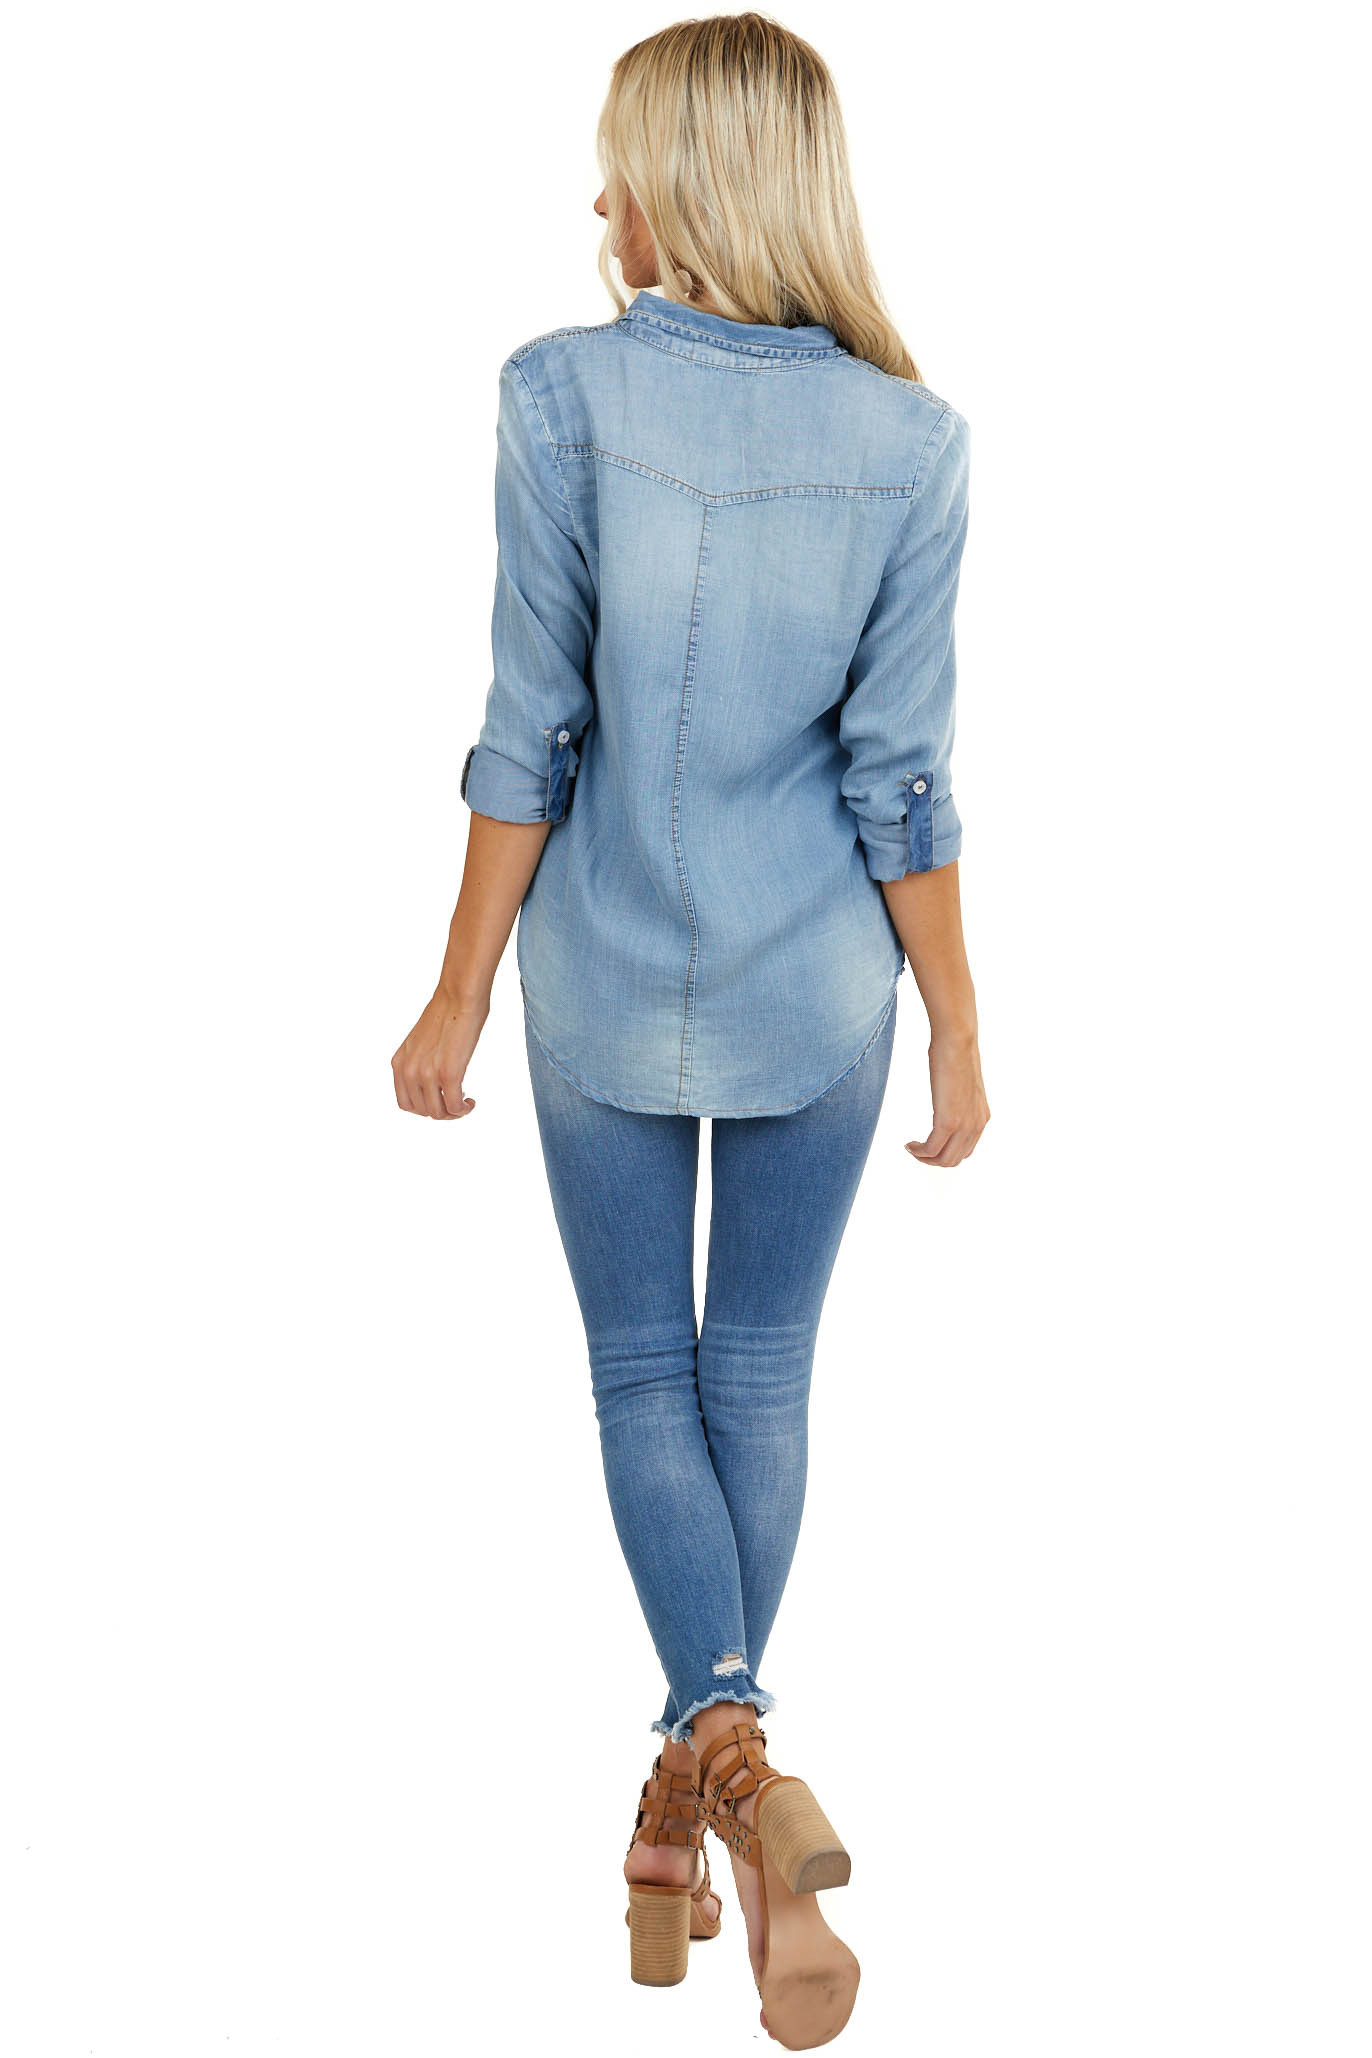 Mid Wash Denim Long Sleeve Button Up Top with Front Pockets